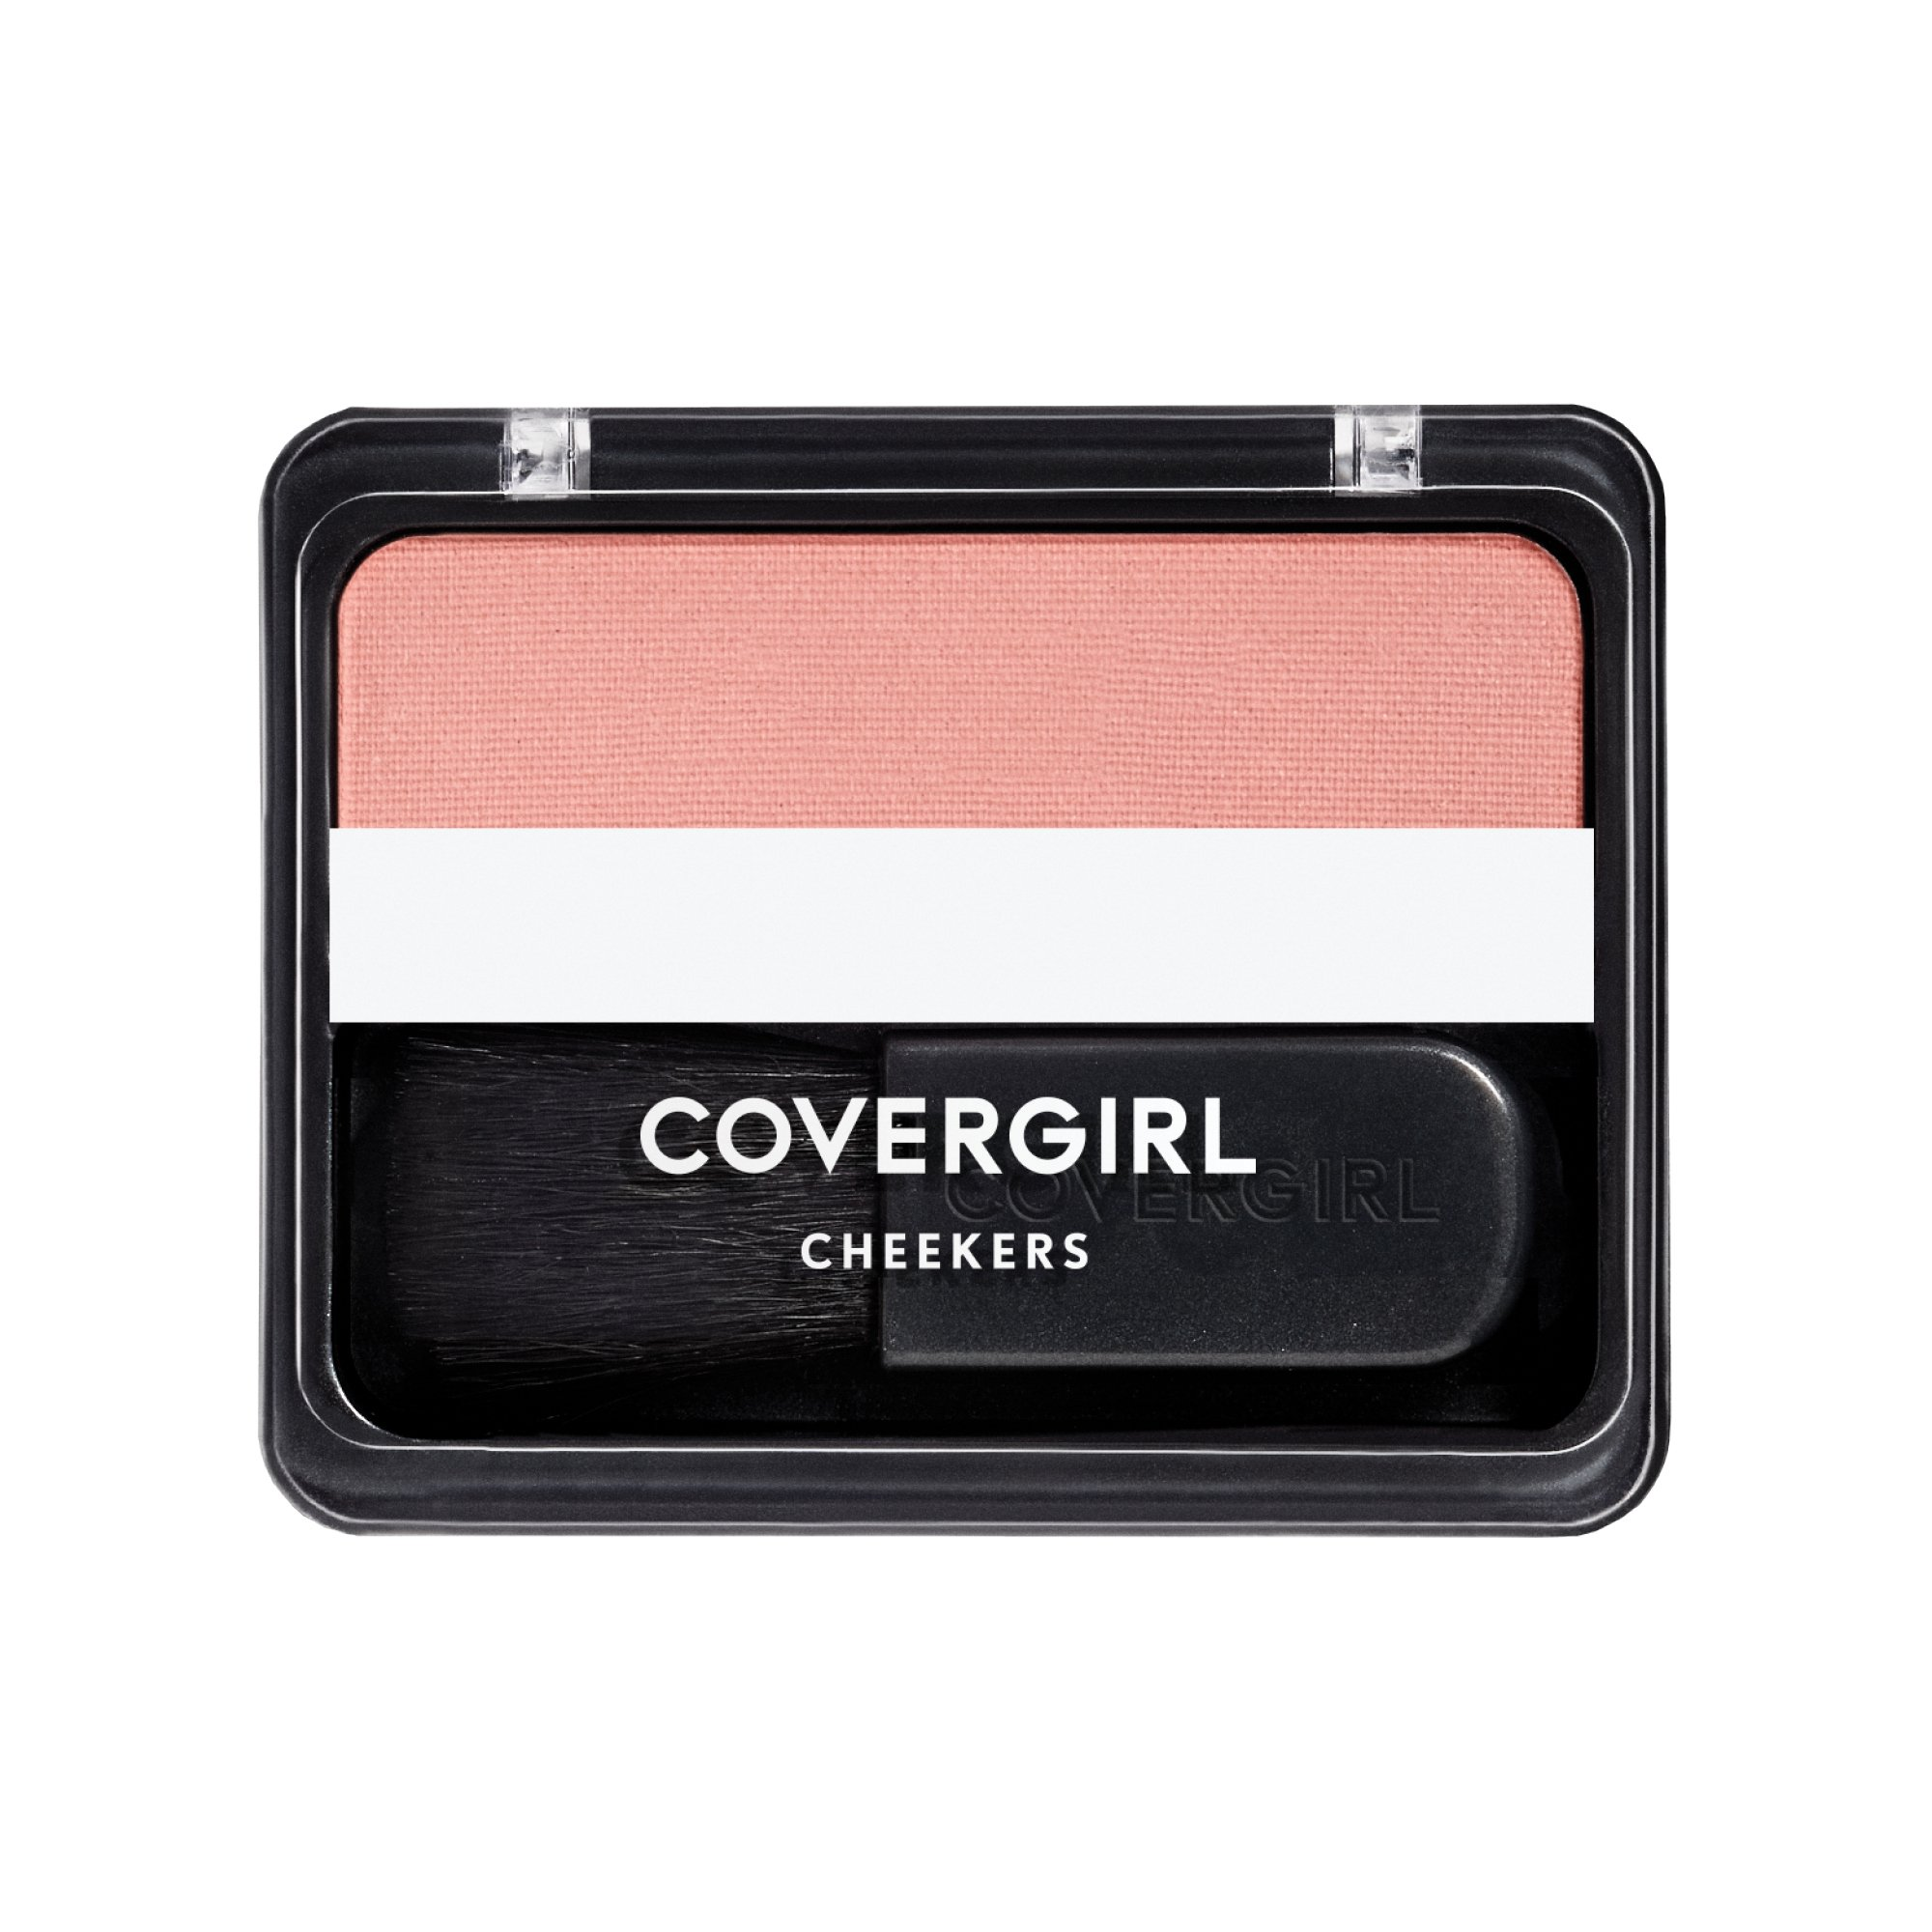 COVERGIRL Cheekers Blendable Powder Blush, Brick Rose (Packaging May Vary)